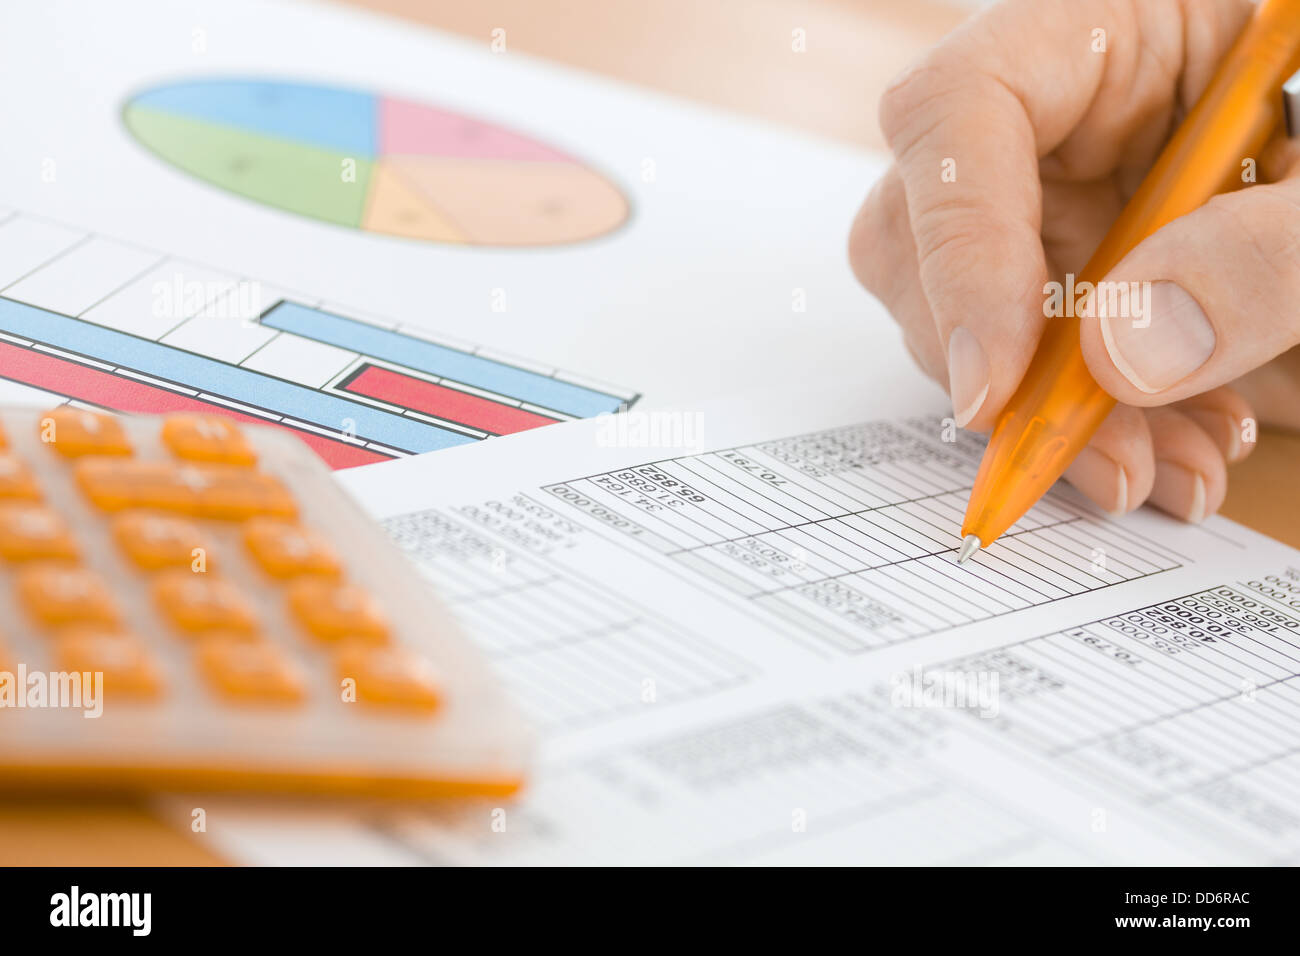 Hand with Orange Pen and Calculator Checking Spreadsheet Figures - Stock Image